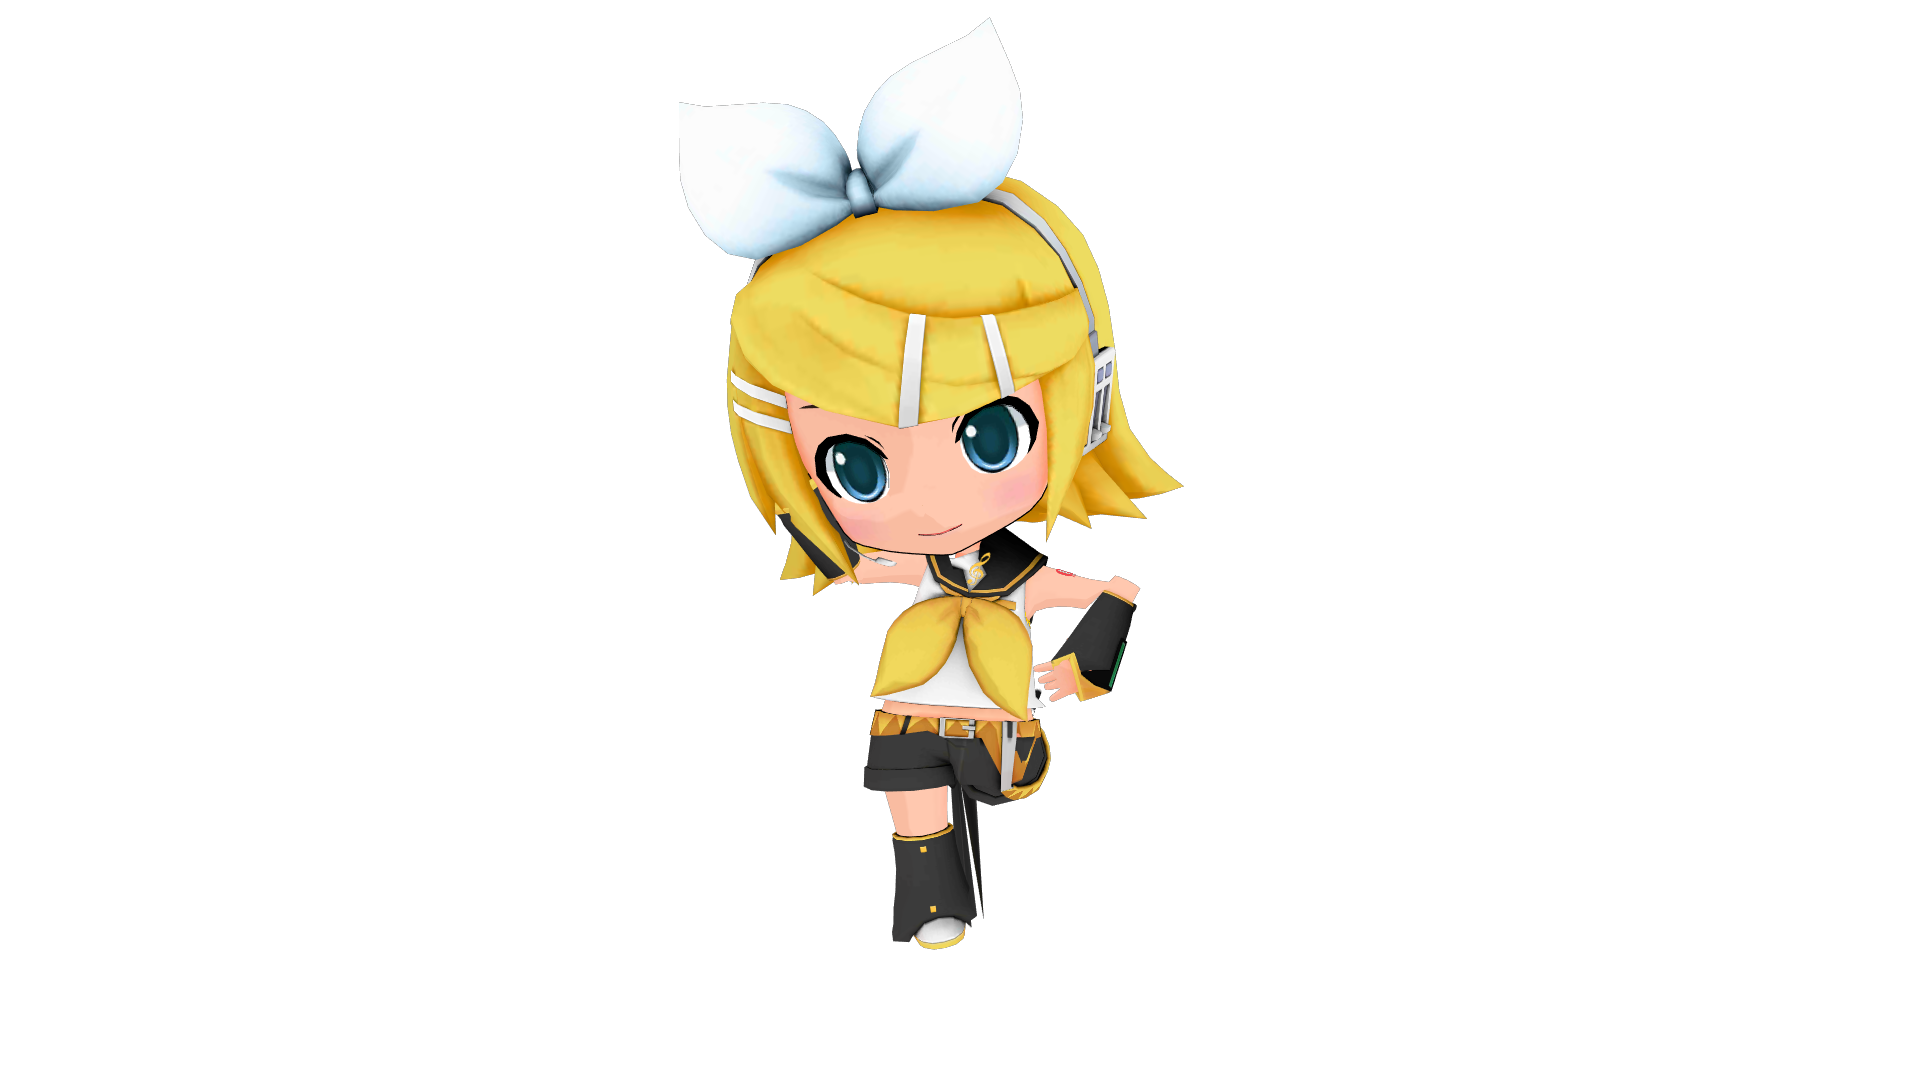 [MMD DL] Project Mirai DX Rin Default By